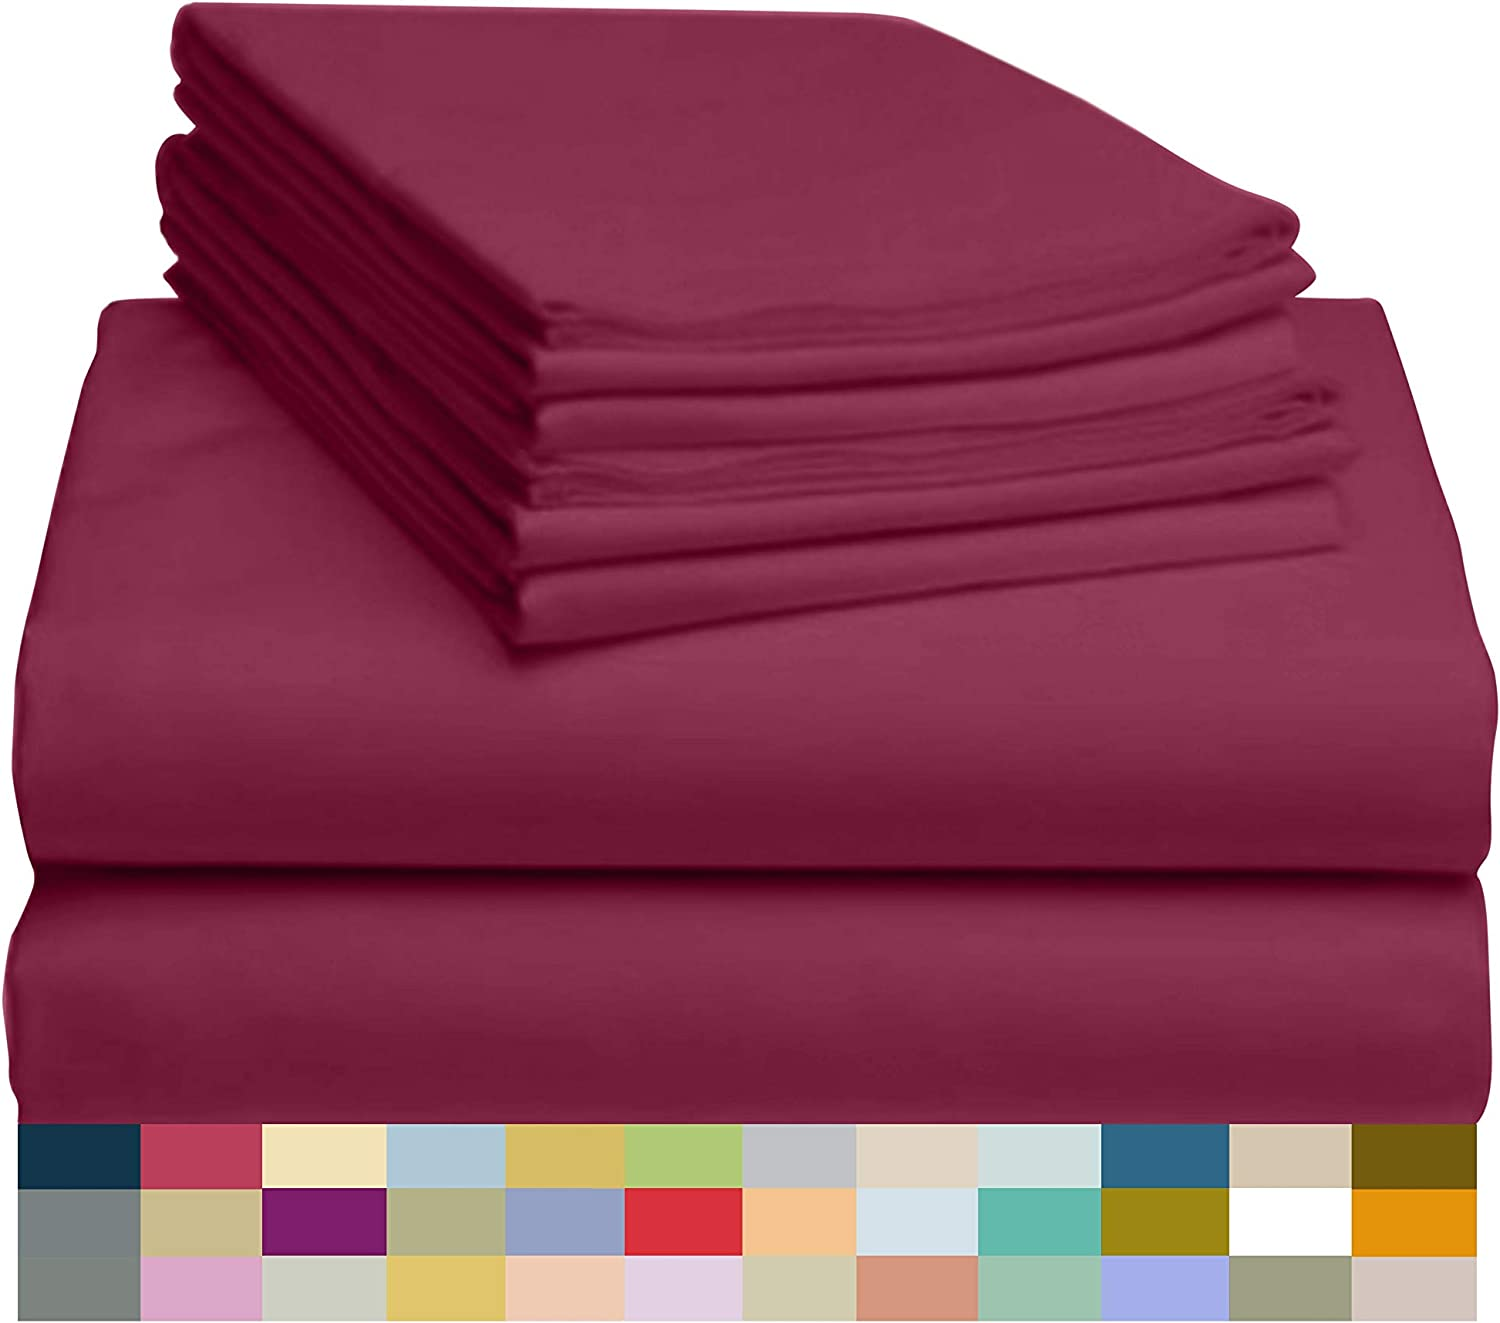 "LuxClub 6 PC Sheet Set Bamboo Sheets Deep Pockets 18"" Eco Friendly Wrinkle Free Sheets Hypoallergenic Anti-Bacteria Machine Washable Hotel Bedding Silky Soft - Burgundy King"